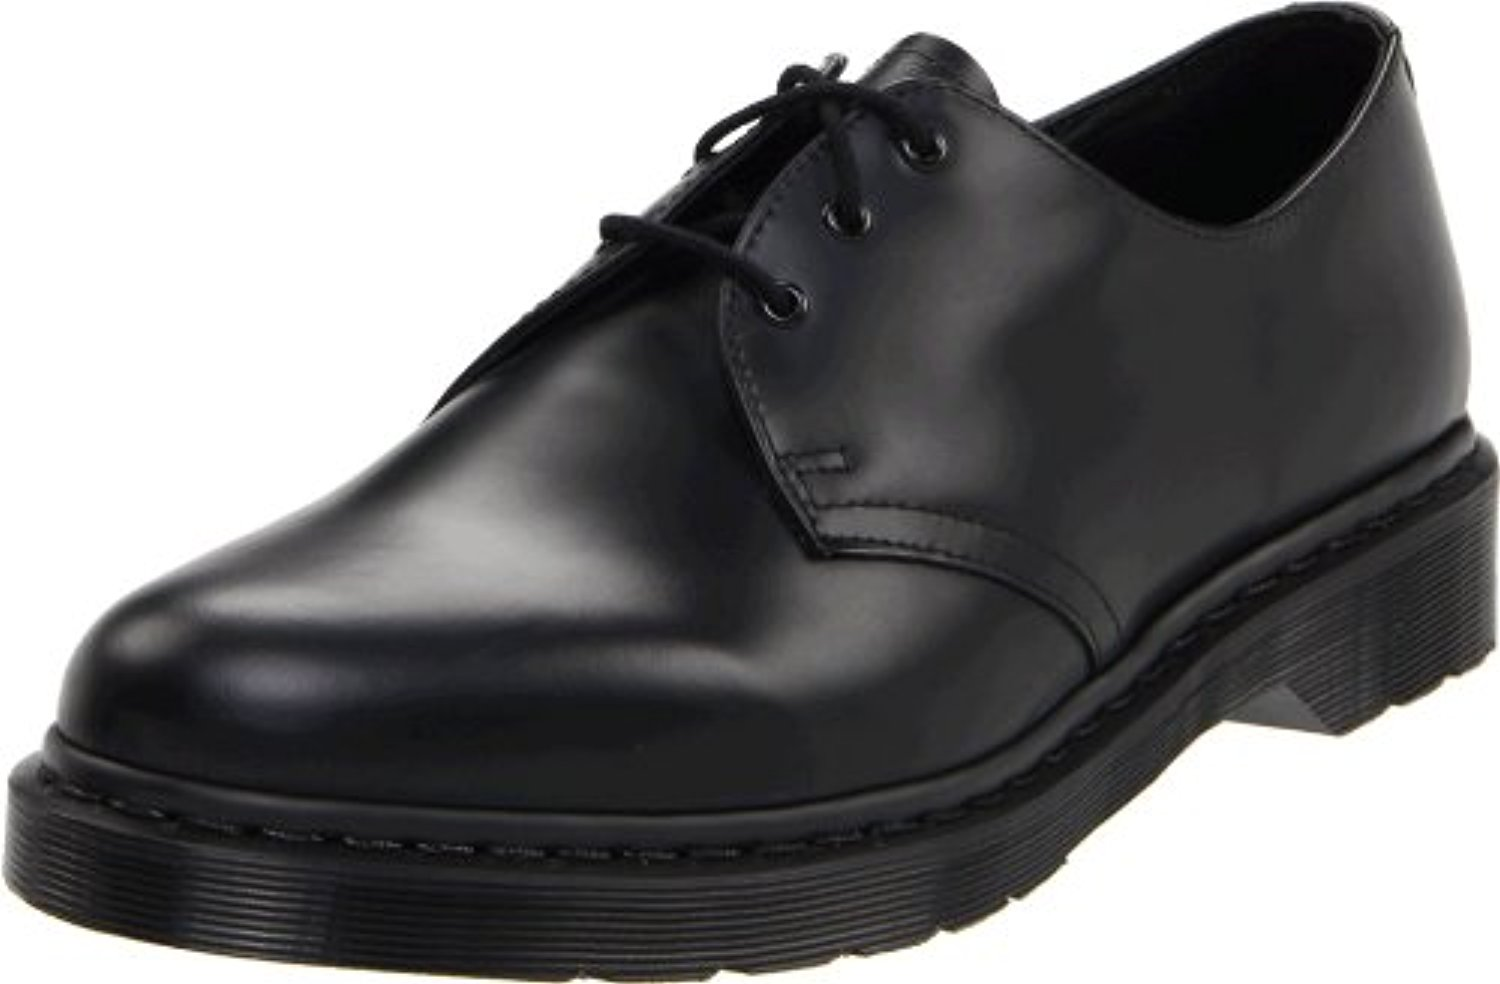 Dr. Martens 1461 Shoe,Black Smooth,11 UK 12 M US by Dr. Martens